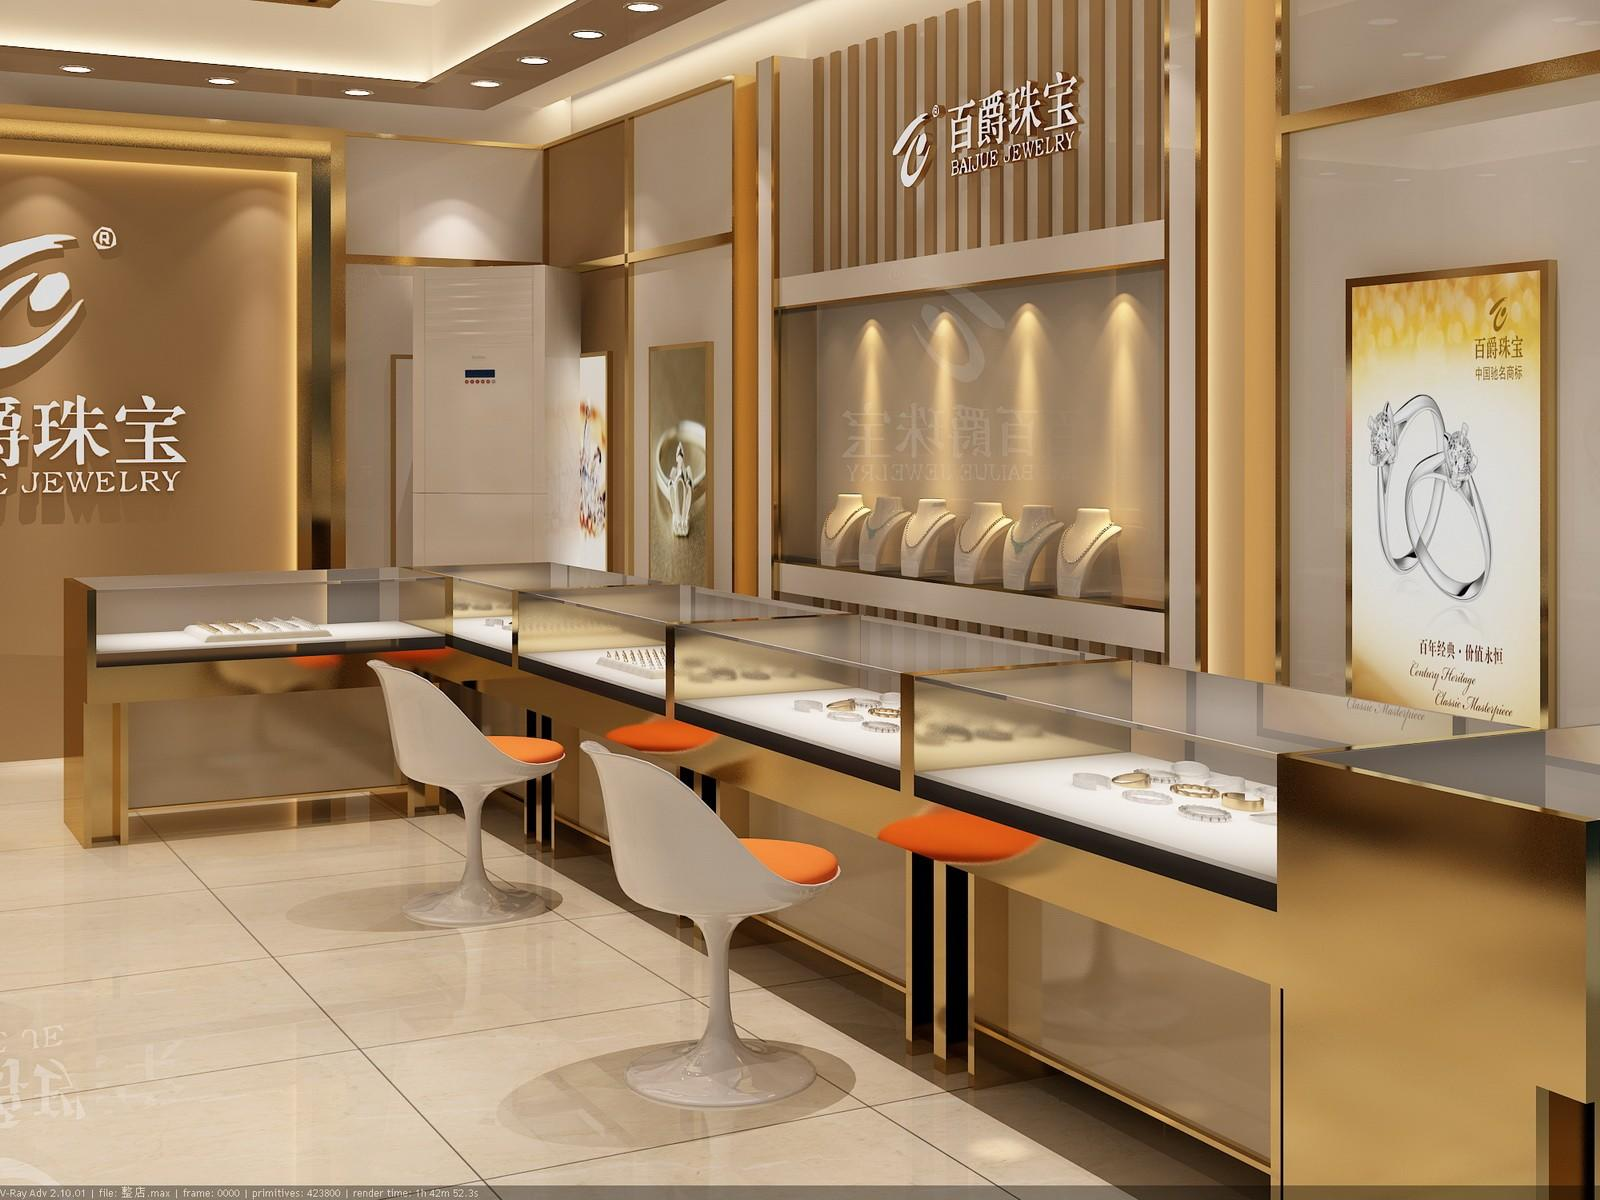 showcase jewellery shop showcase design interior OUYEE company